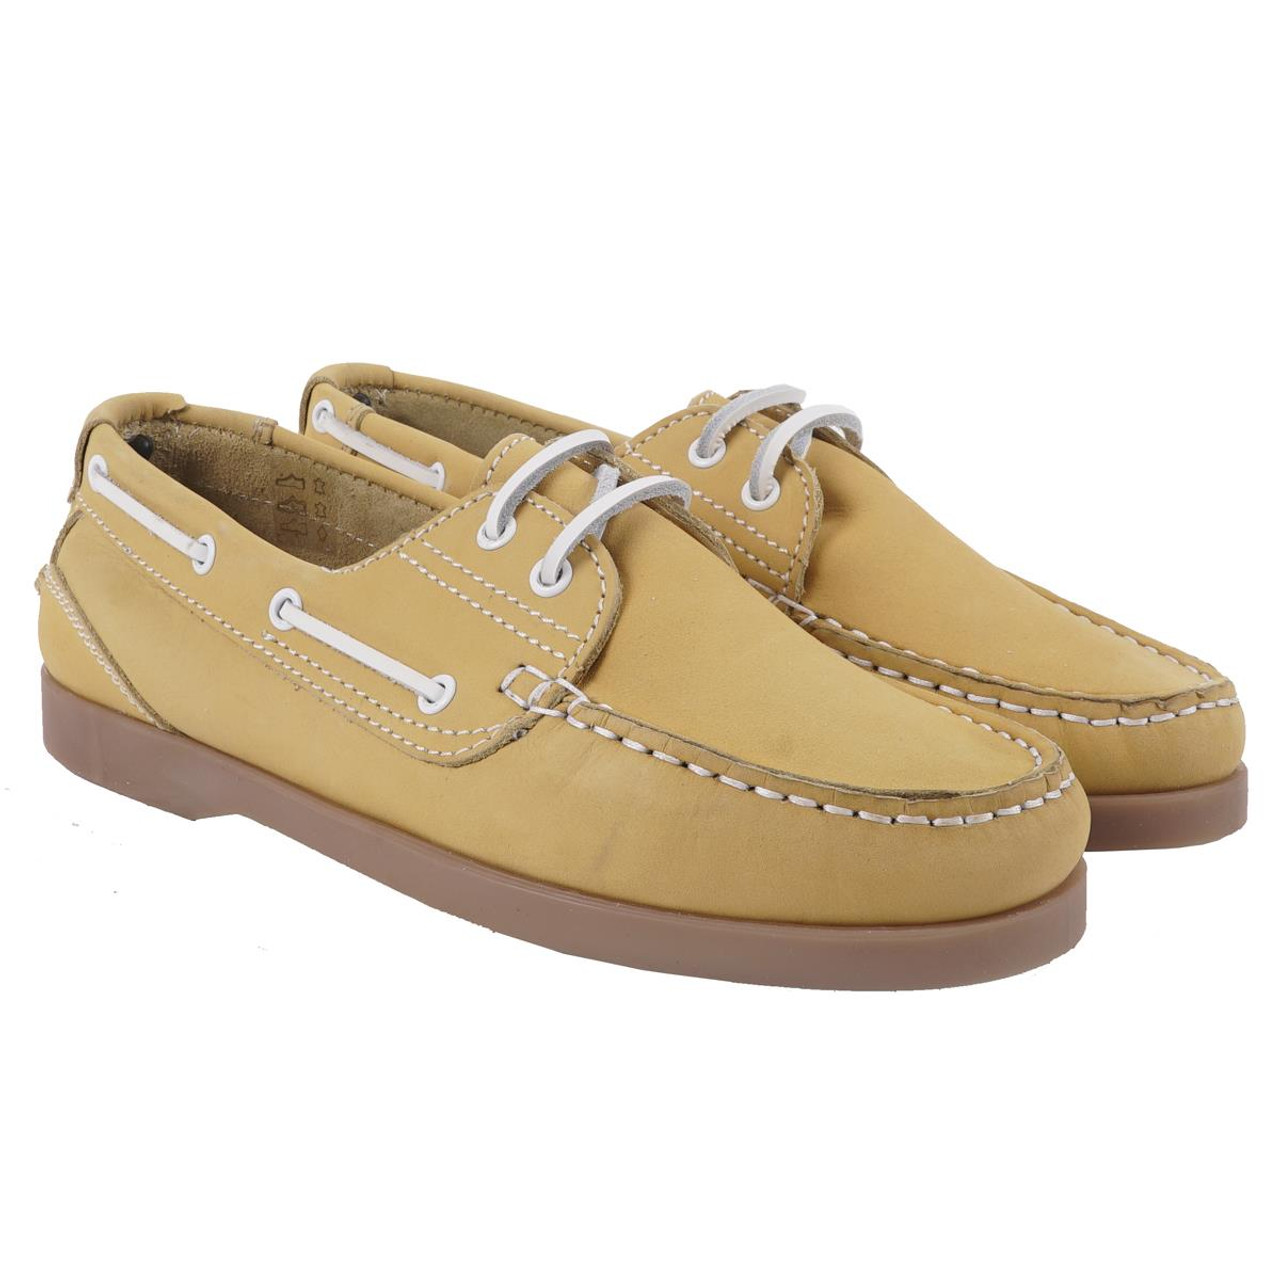 Crew Clothing Womens Leather Boat Shoe